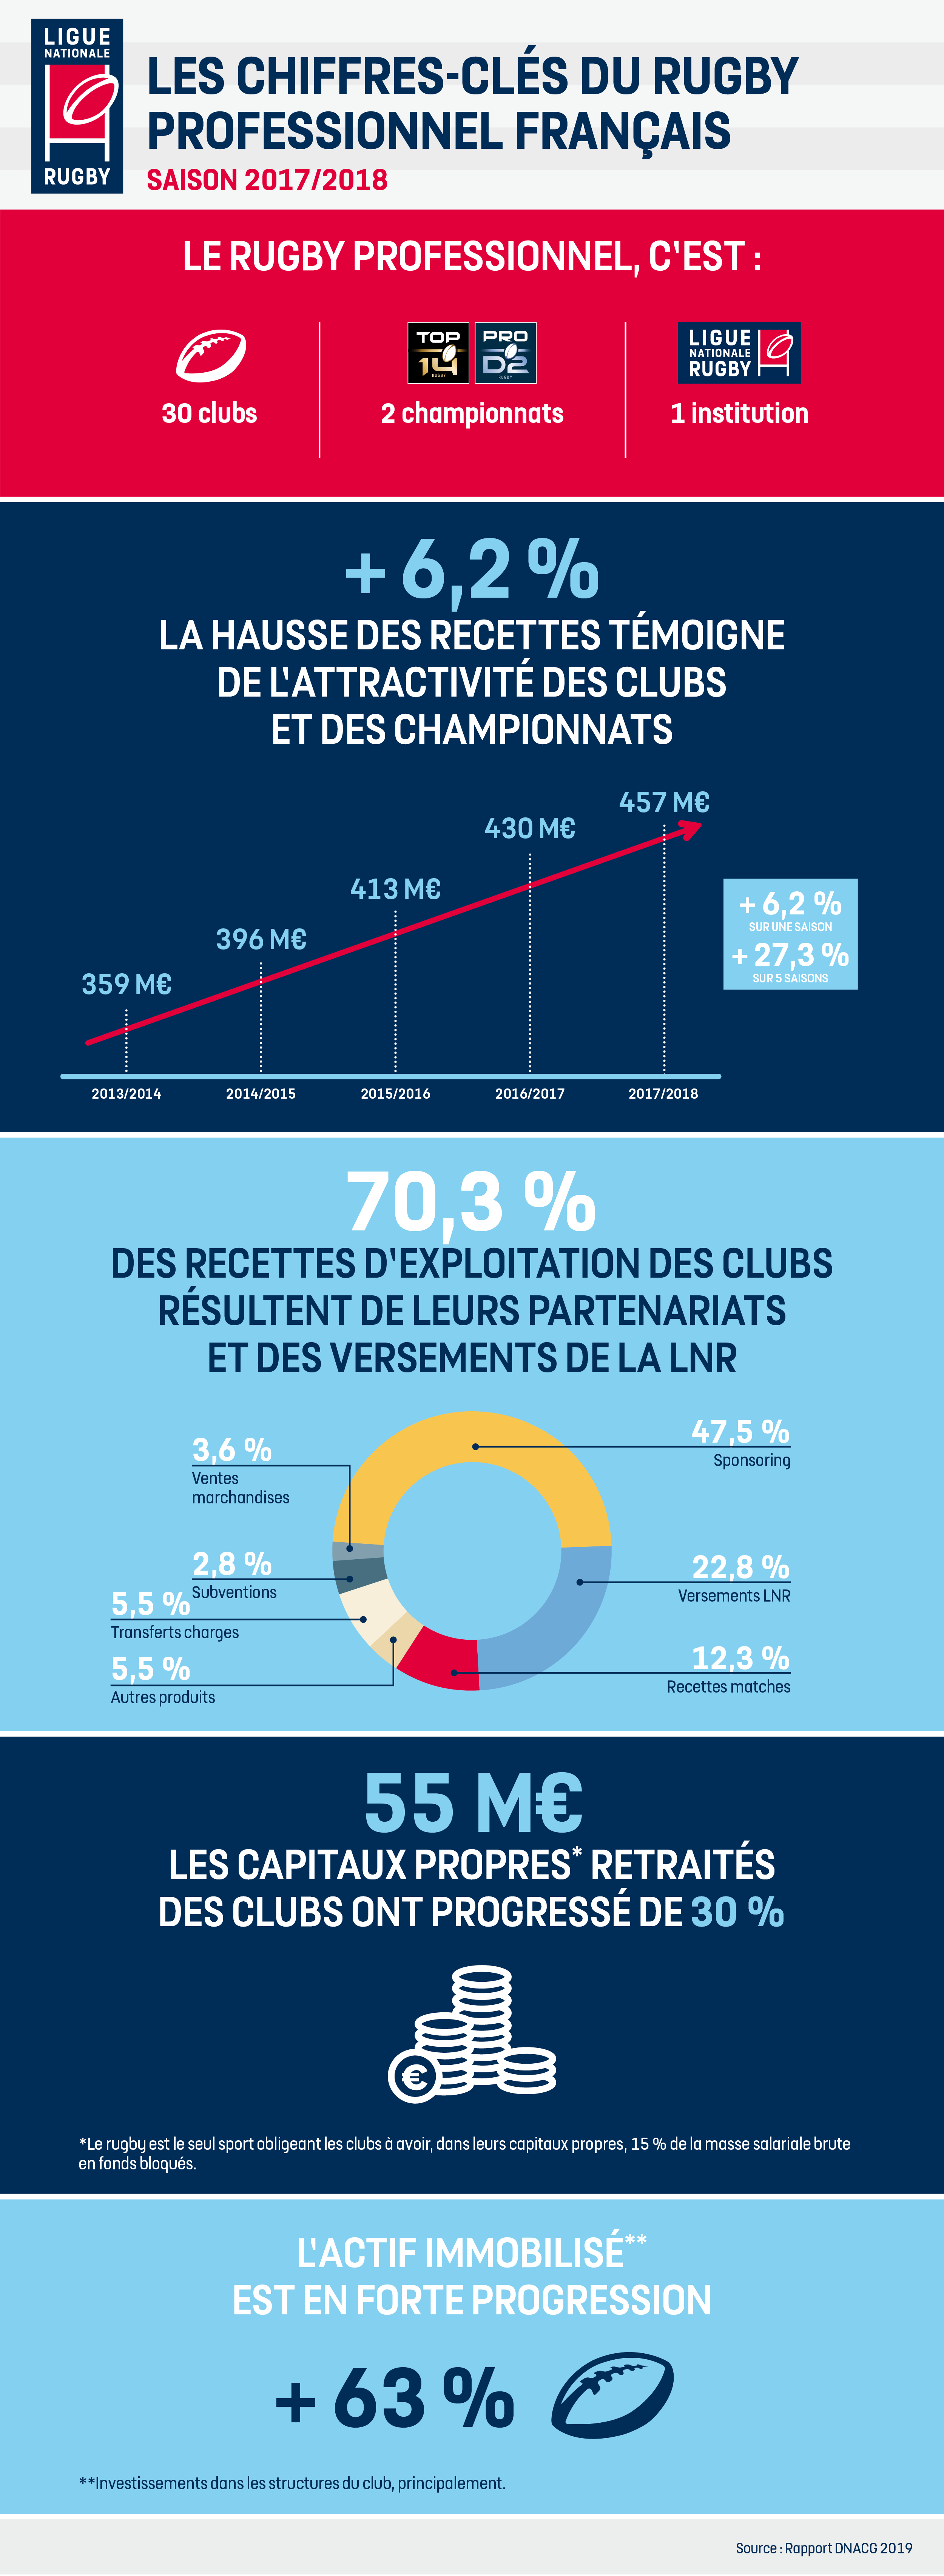 Infographie Rapport DNACG 2019.png